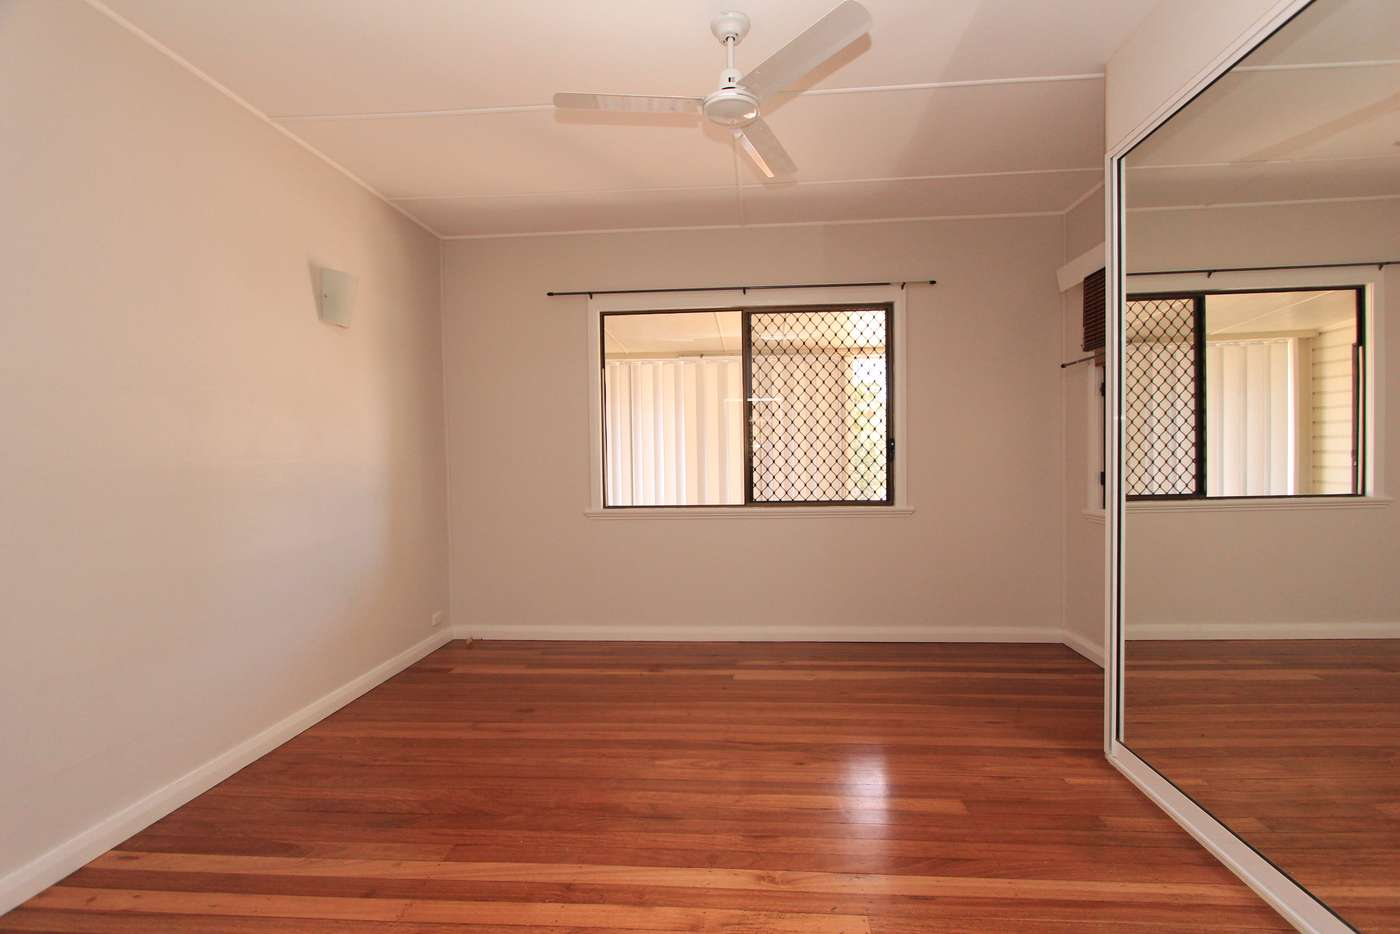 Seventh view of Homely house listing, 32 Barbeler Street, Currajong QLD 4812